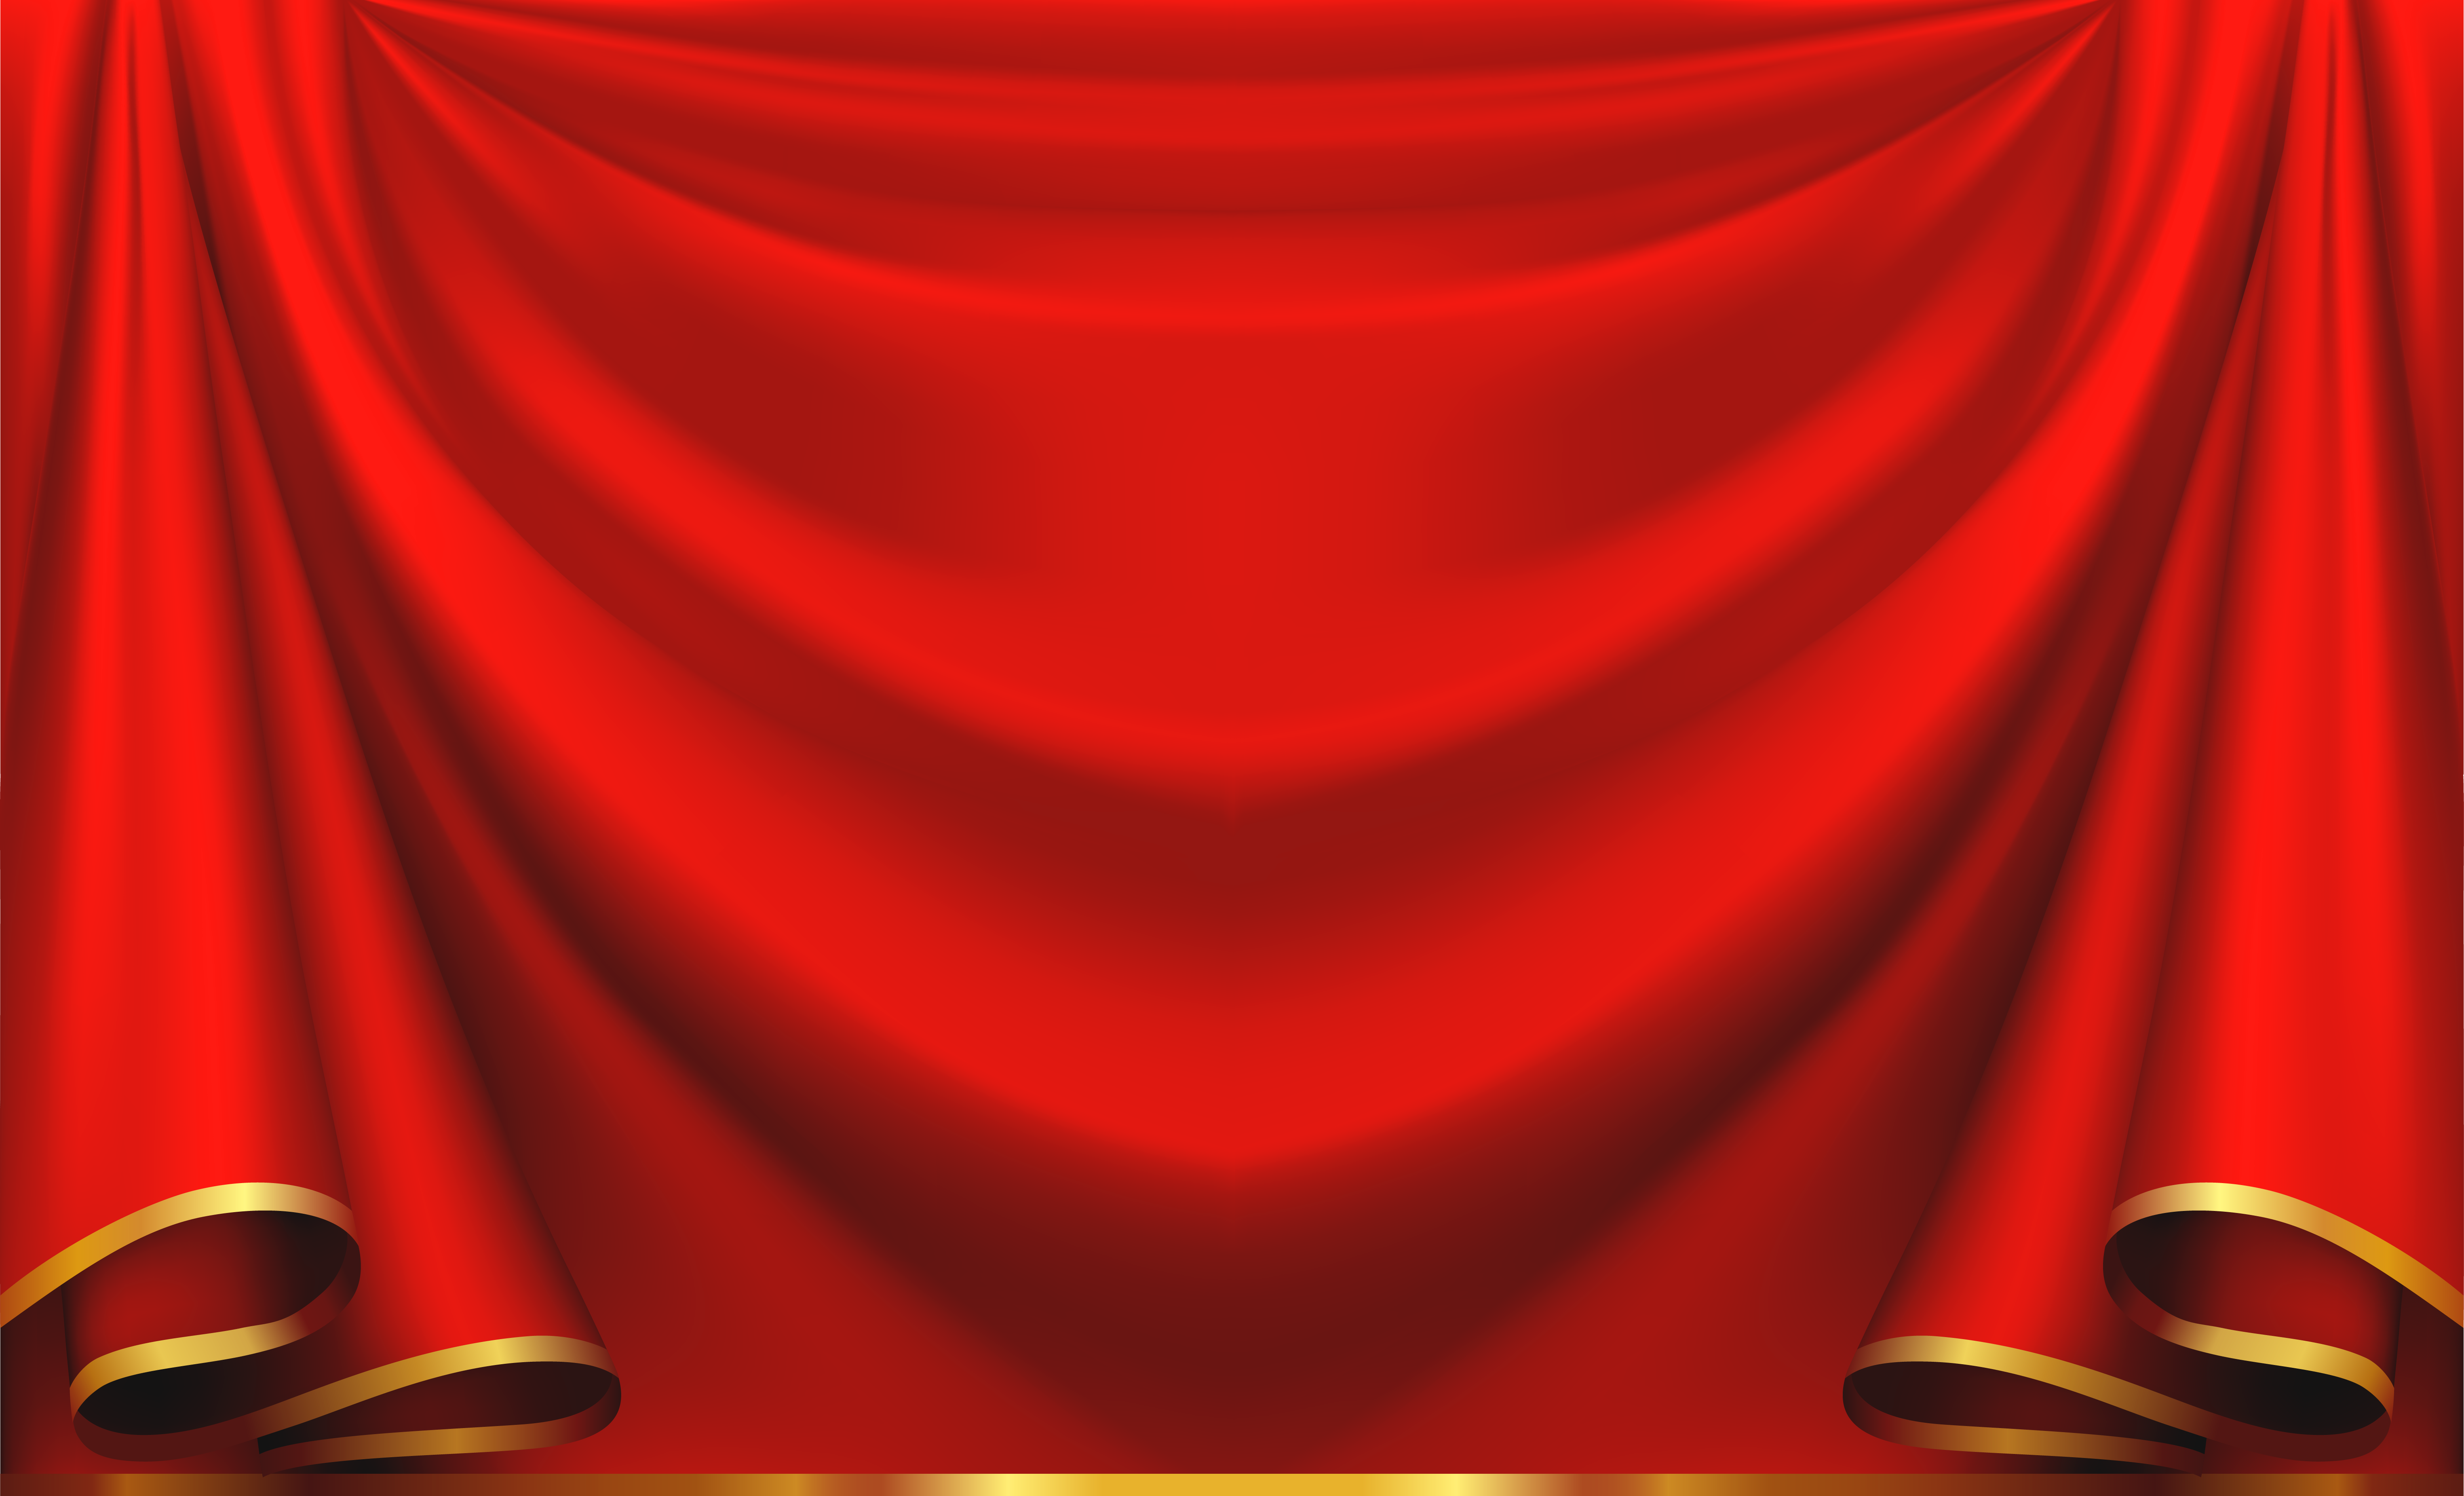 Curtain clipart red curtain  size Clipart View High